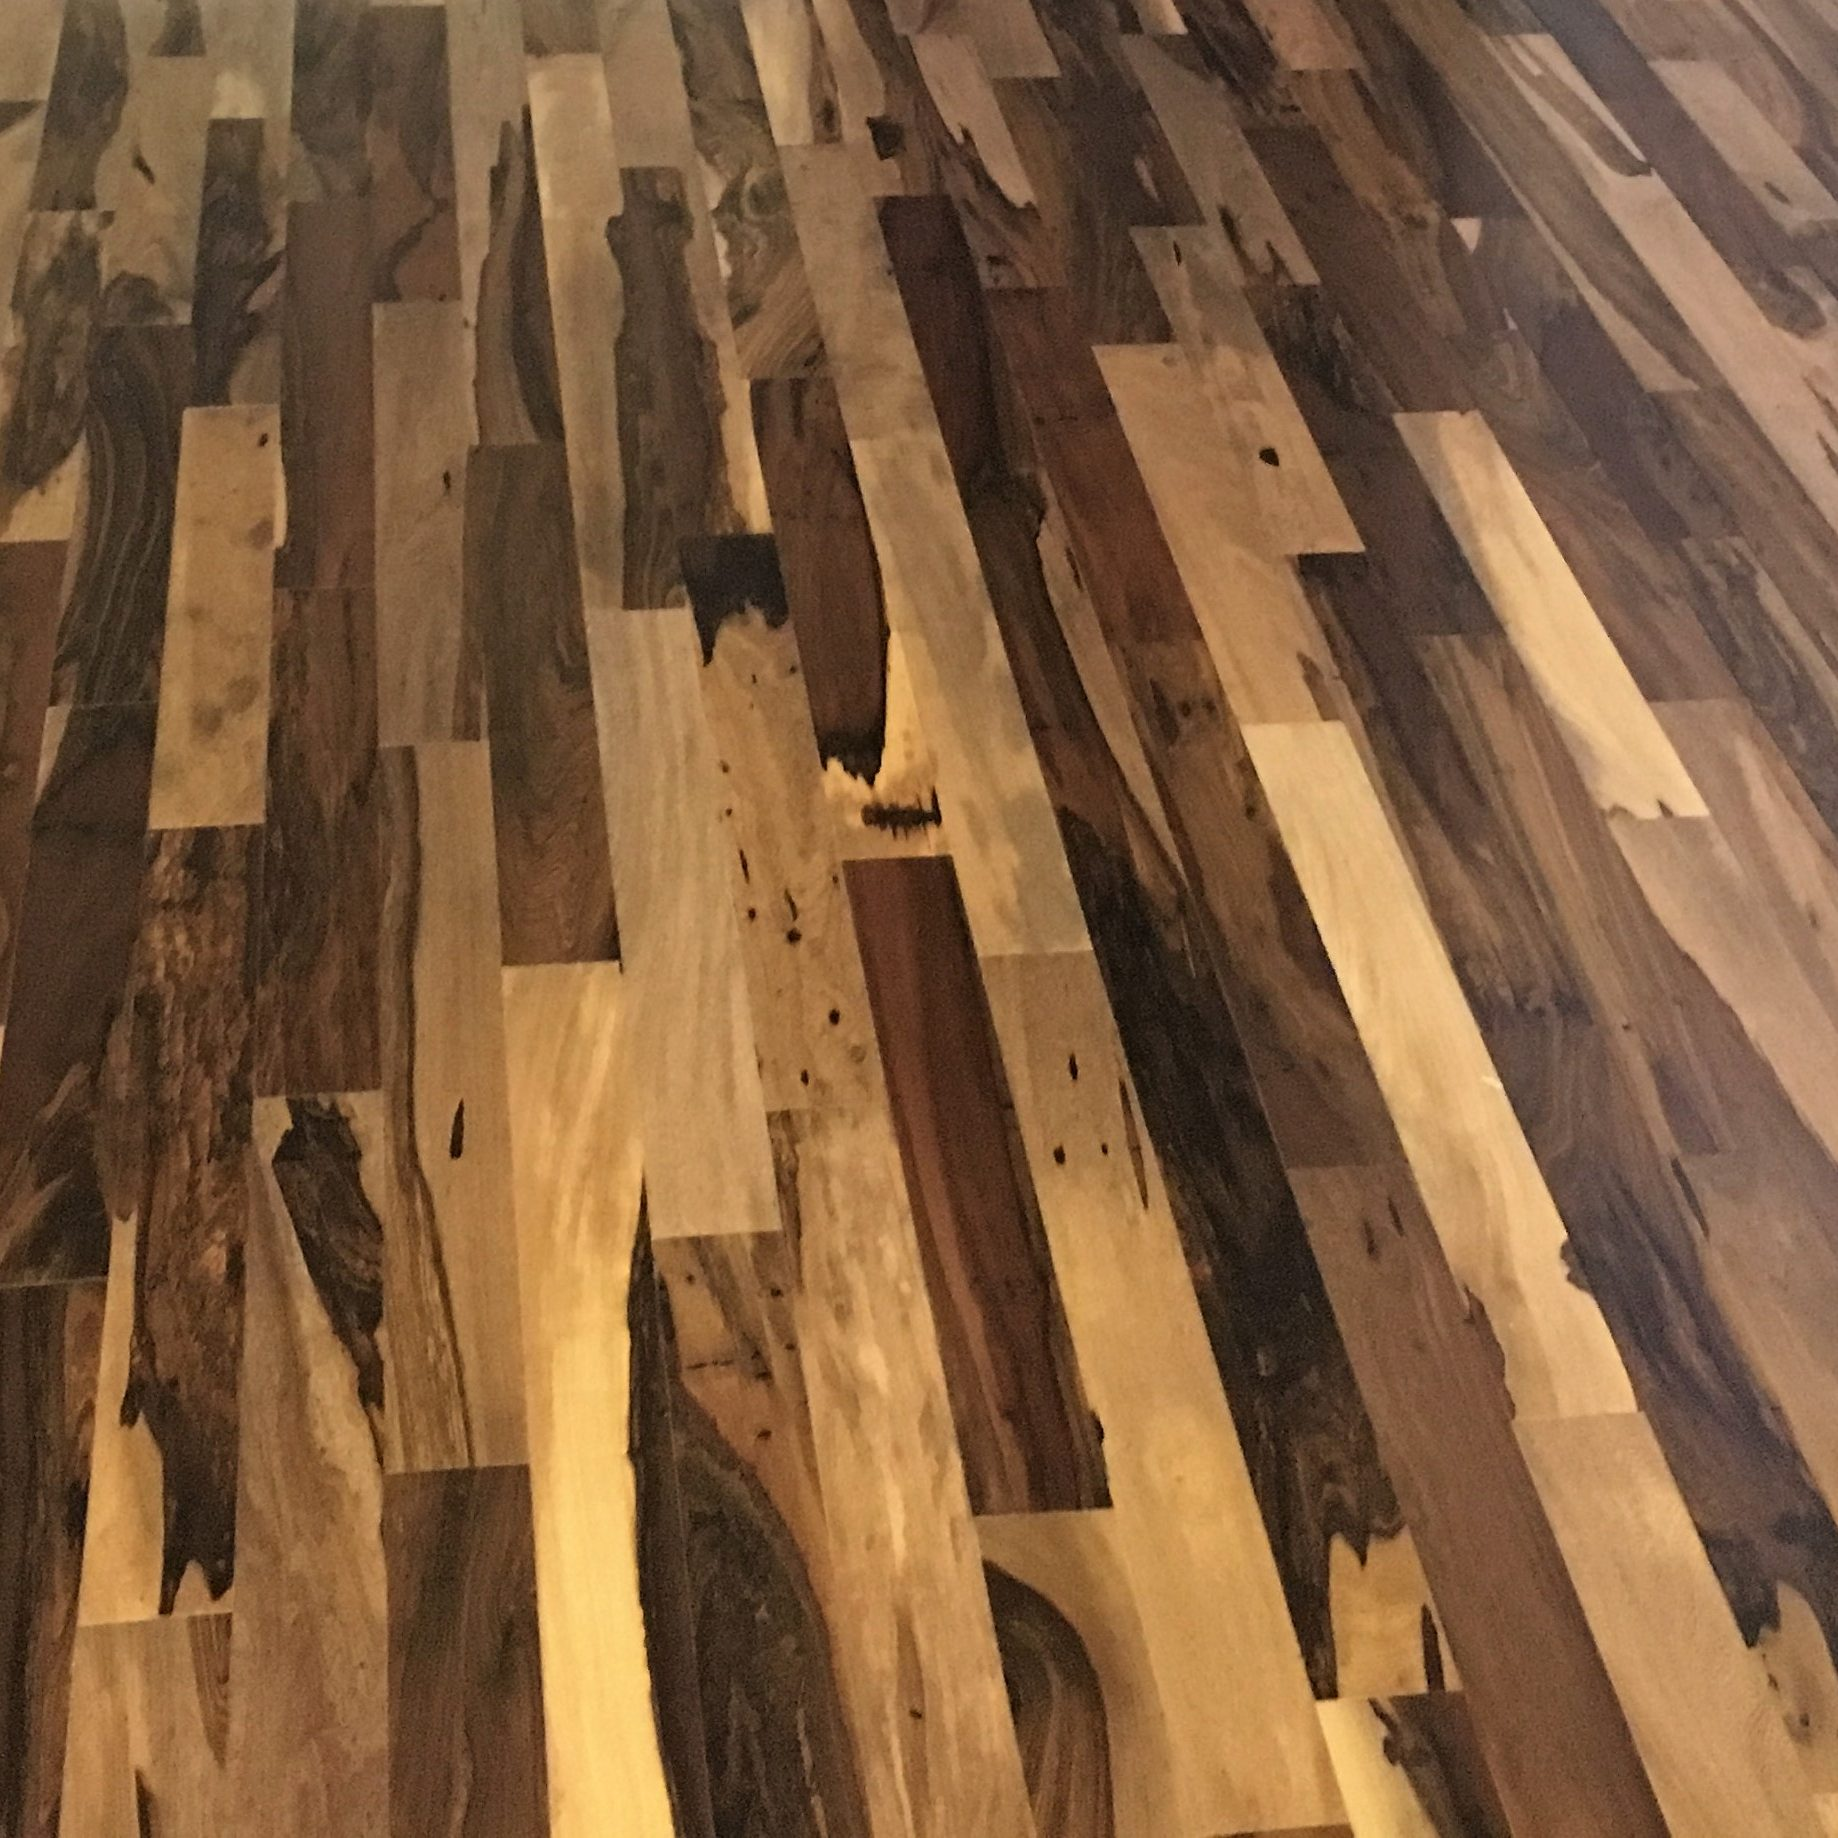 hardwood view guajara types flooring moabi brazilian floor products fantastic wood gaujara for of koa woodtypes in